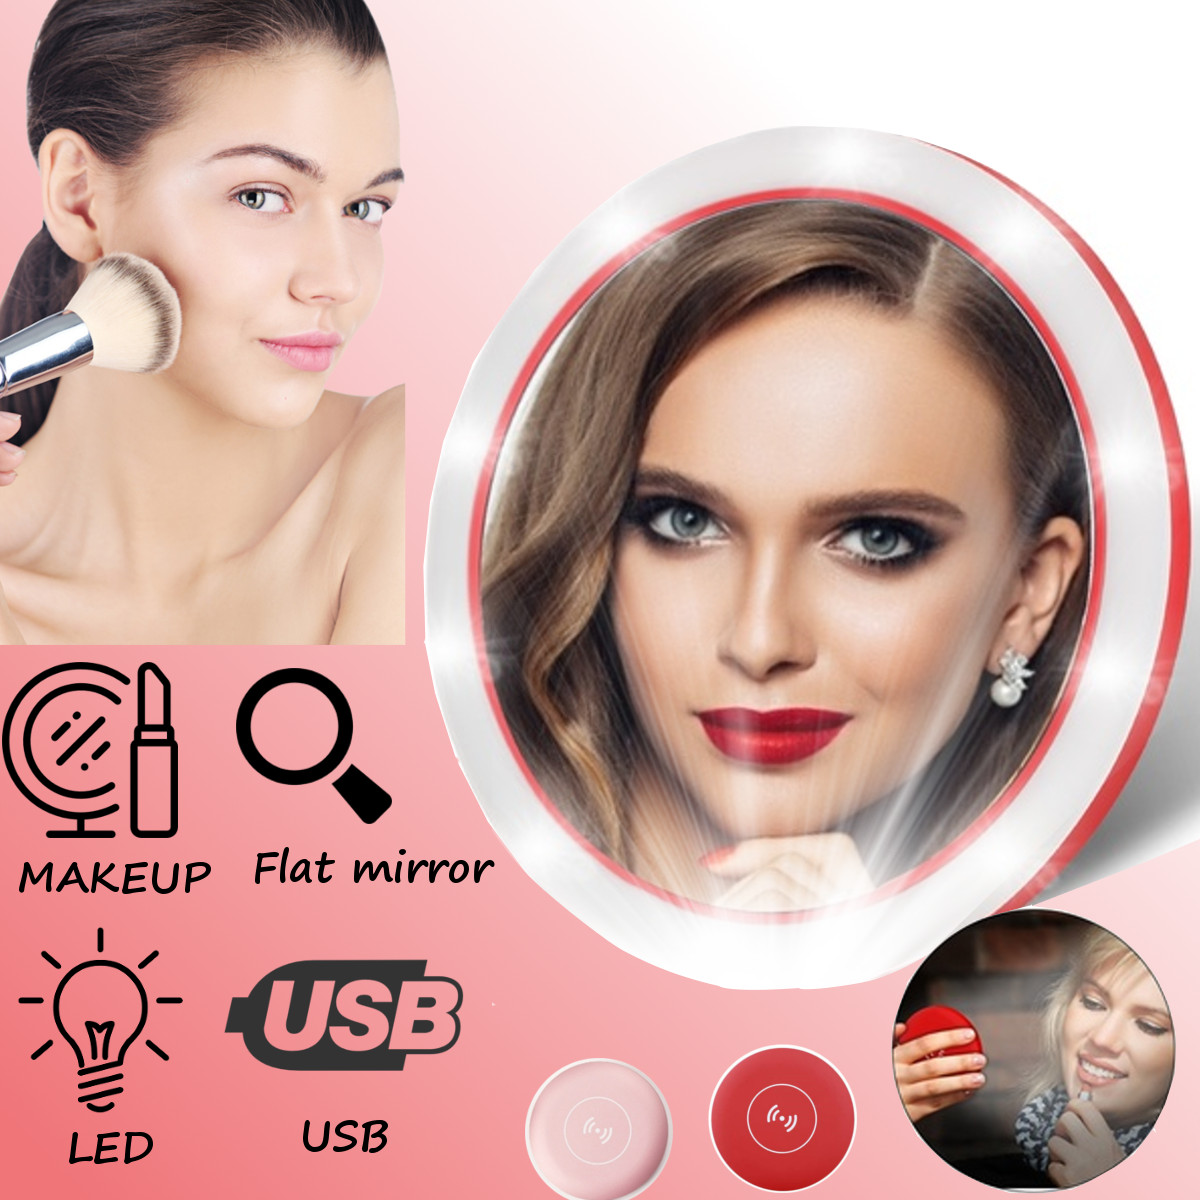 Portable LED Lighted Mini Circular Makeup Mirror Compact Travel Sensing Lighting Cosmetic Mirror Wireless USB Charging